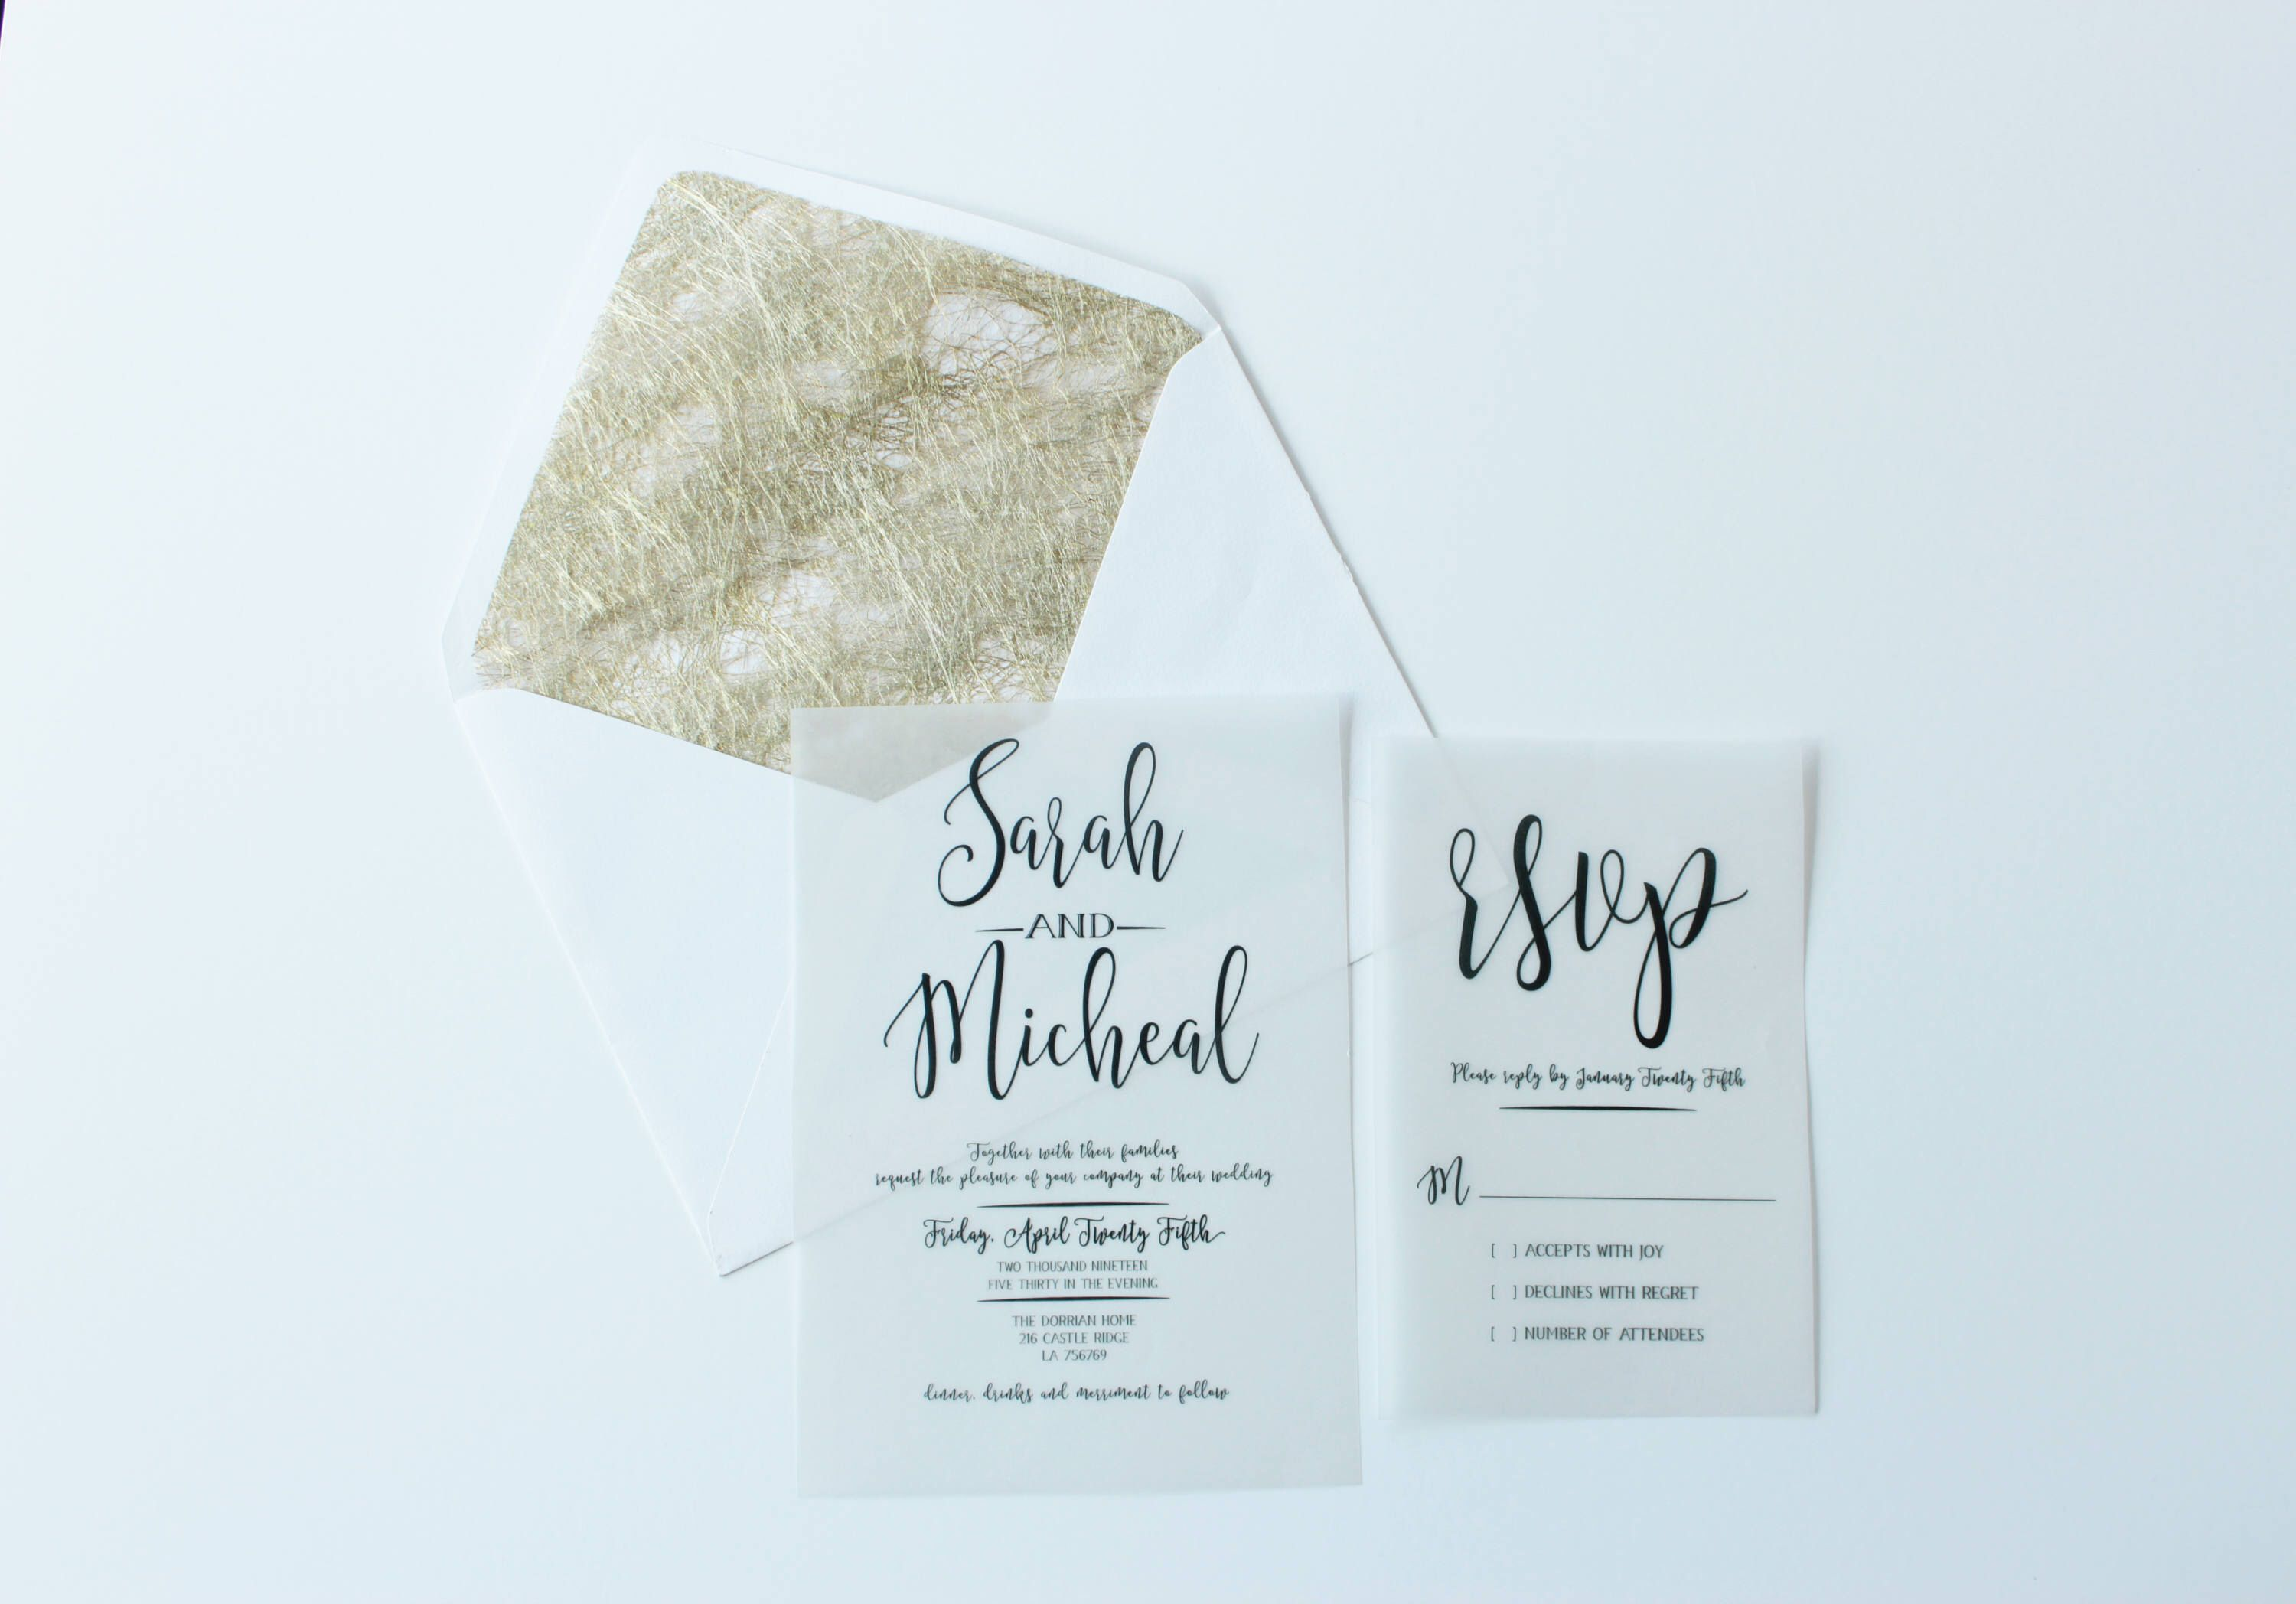 Pin by Yvedoc on Business cards | Pinterest | Gold wedding ...